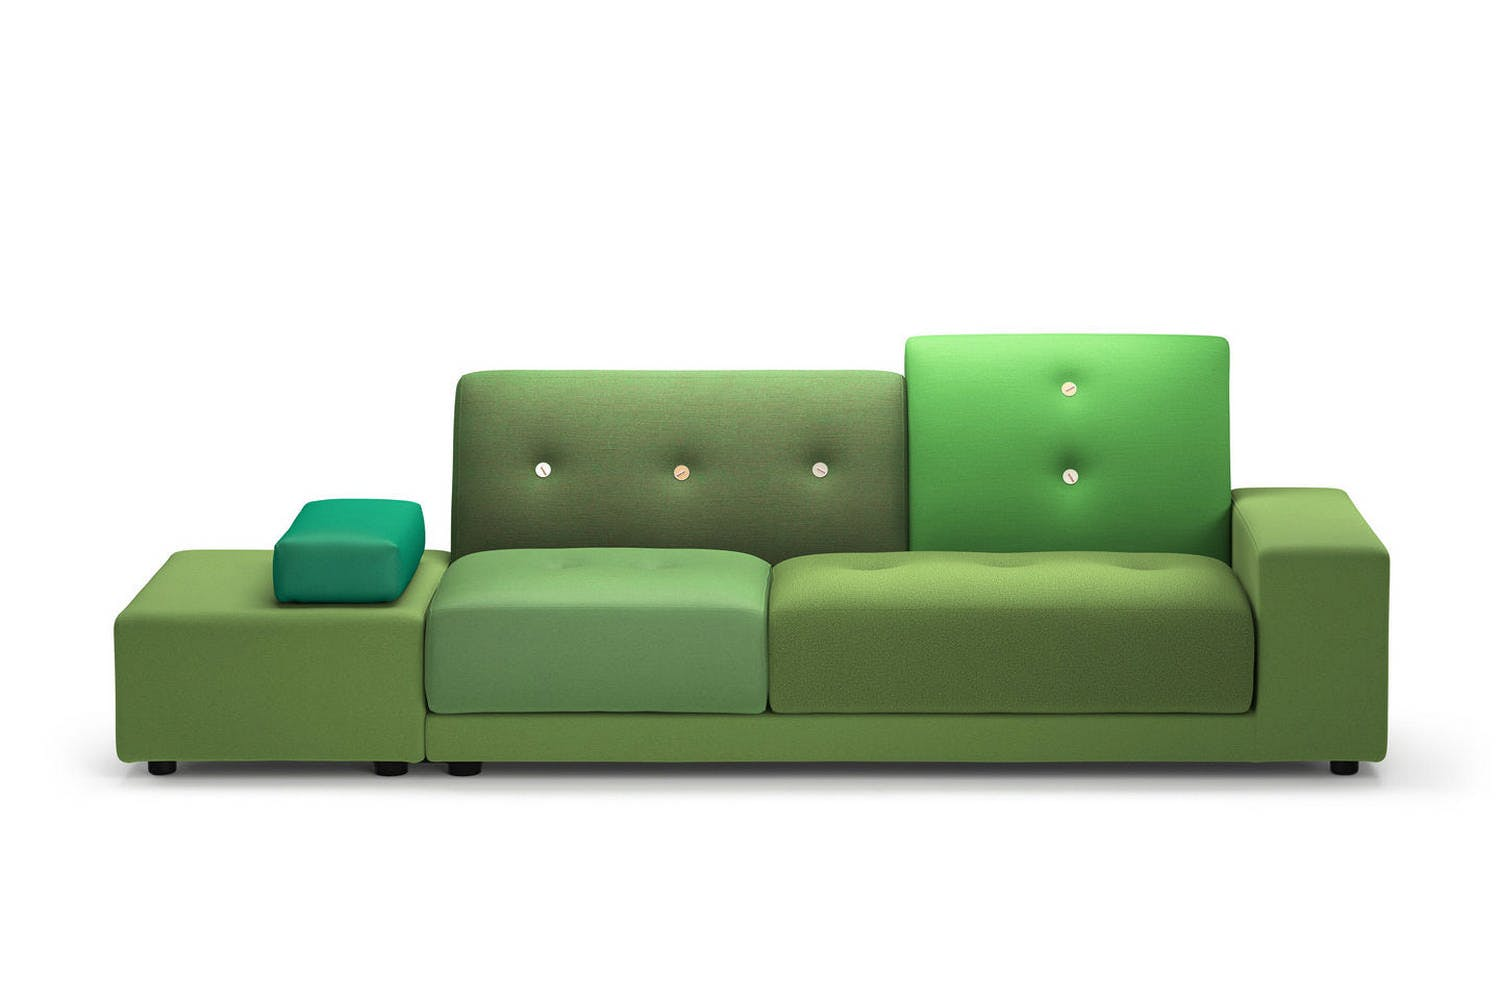 Polder Sofa By A Jongerius For Vitra